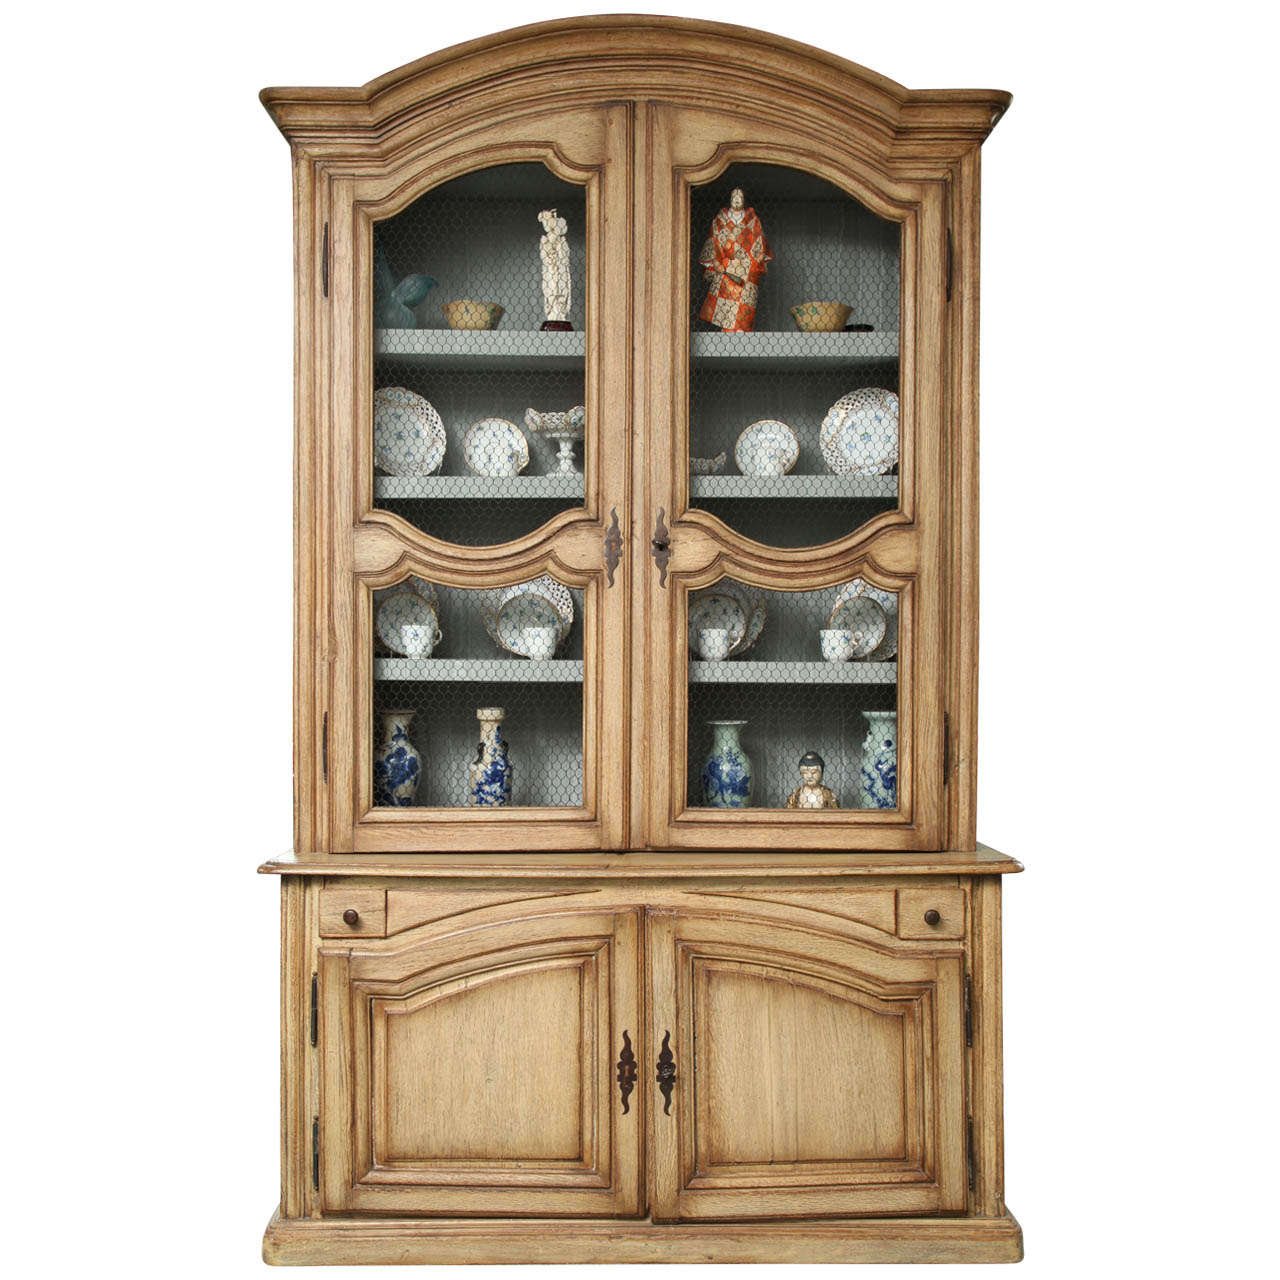 Cerused French Oak Kitchens And Cabinets: 19th Century French Provincial Cerused Oak Display Cabinet